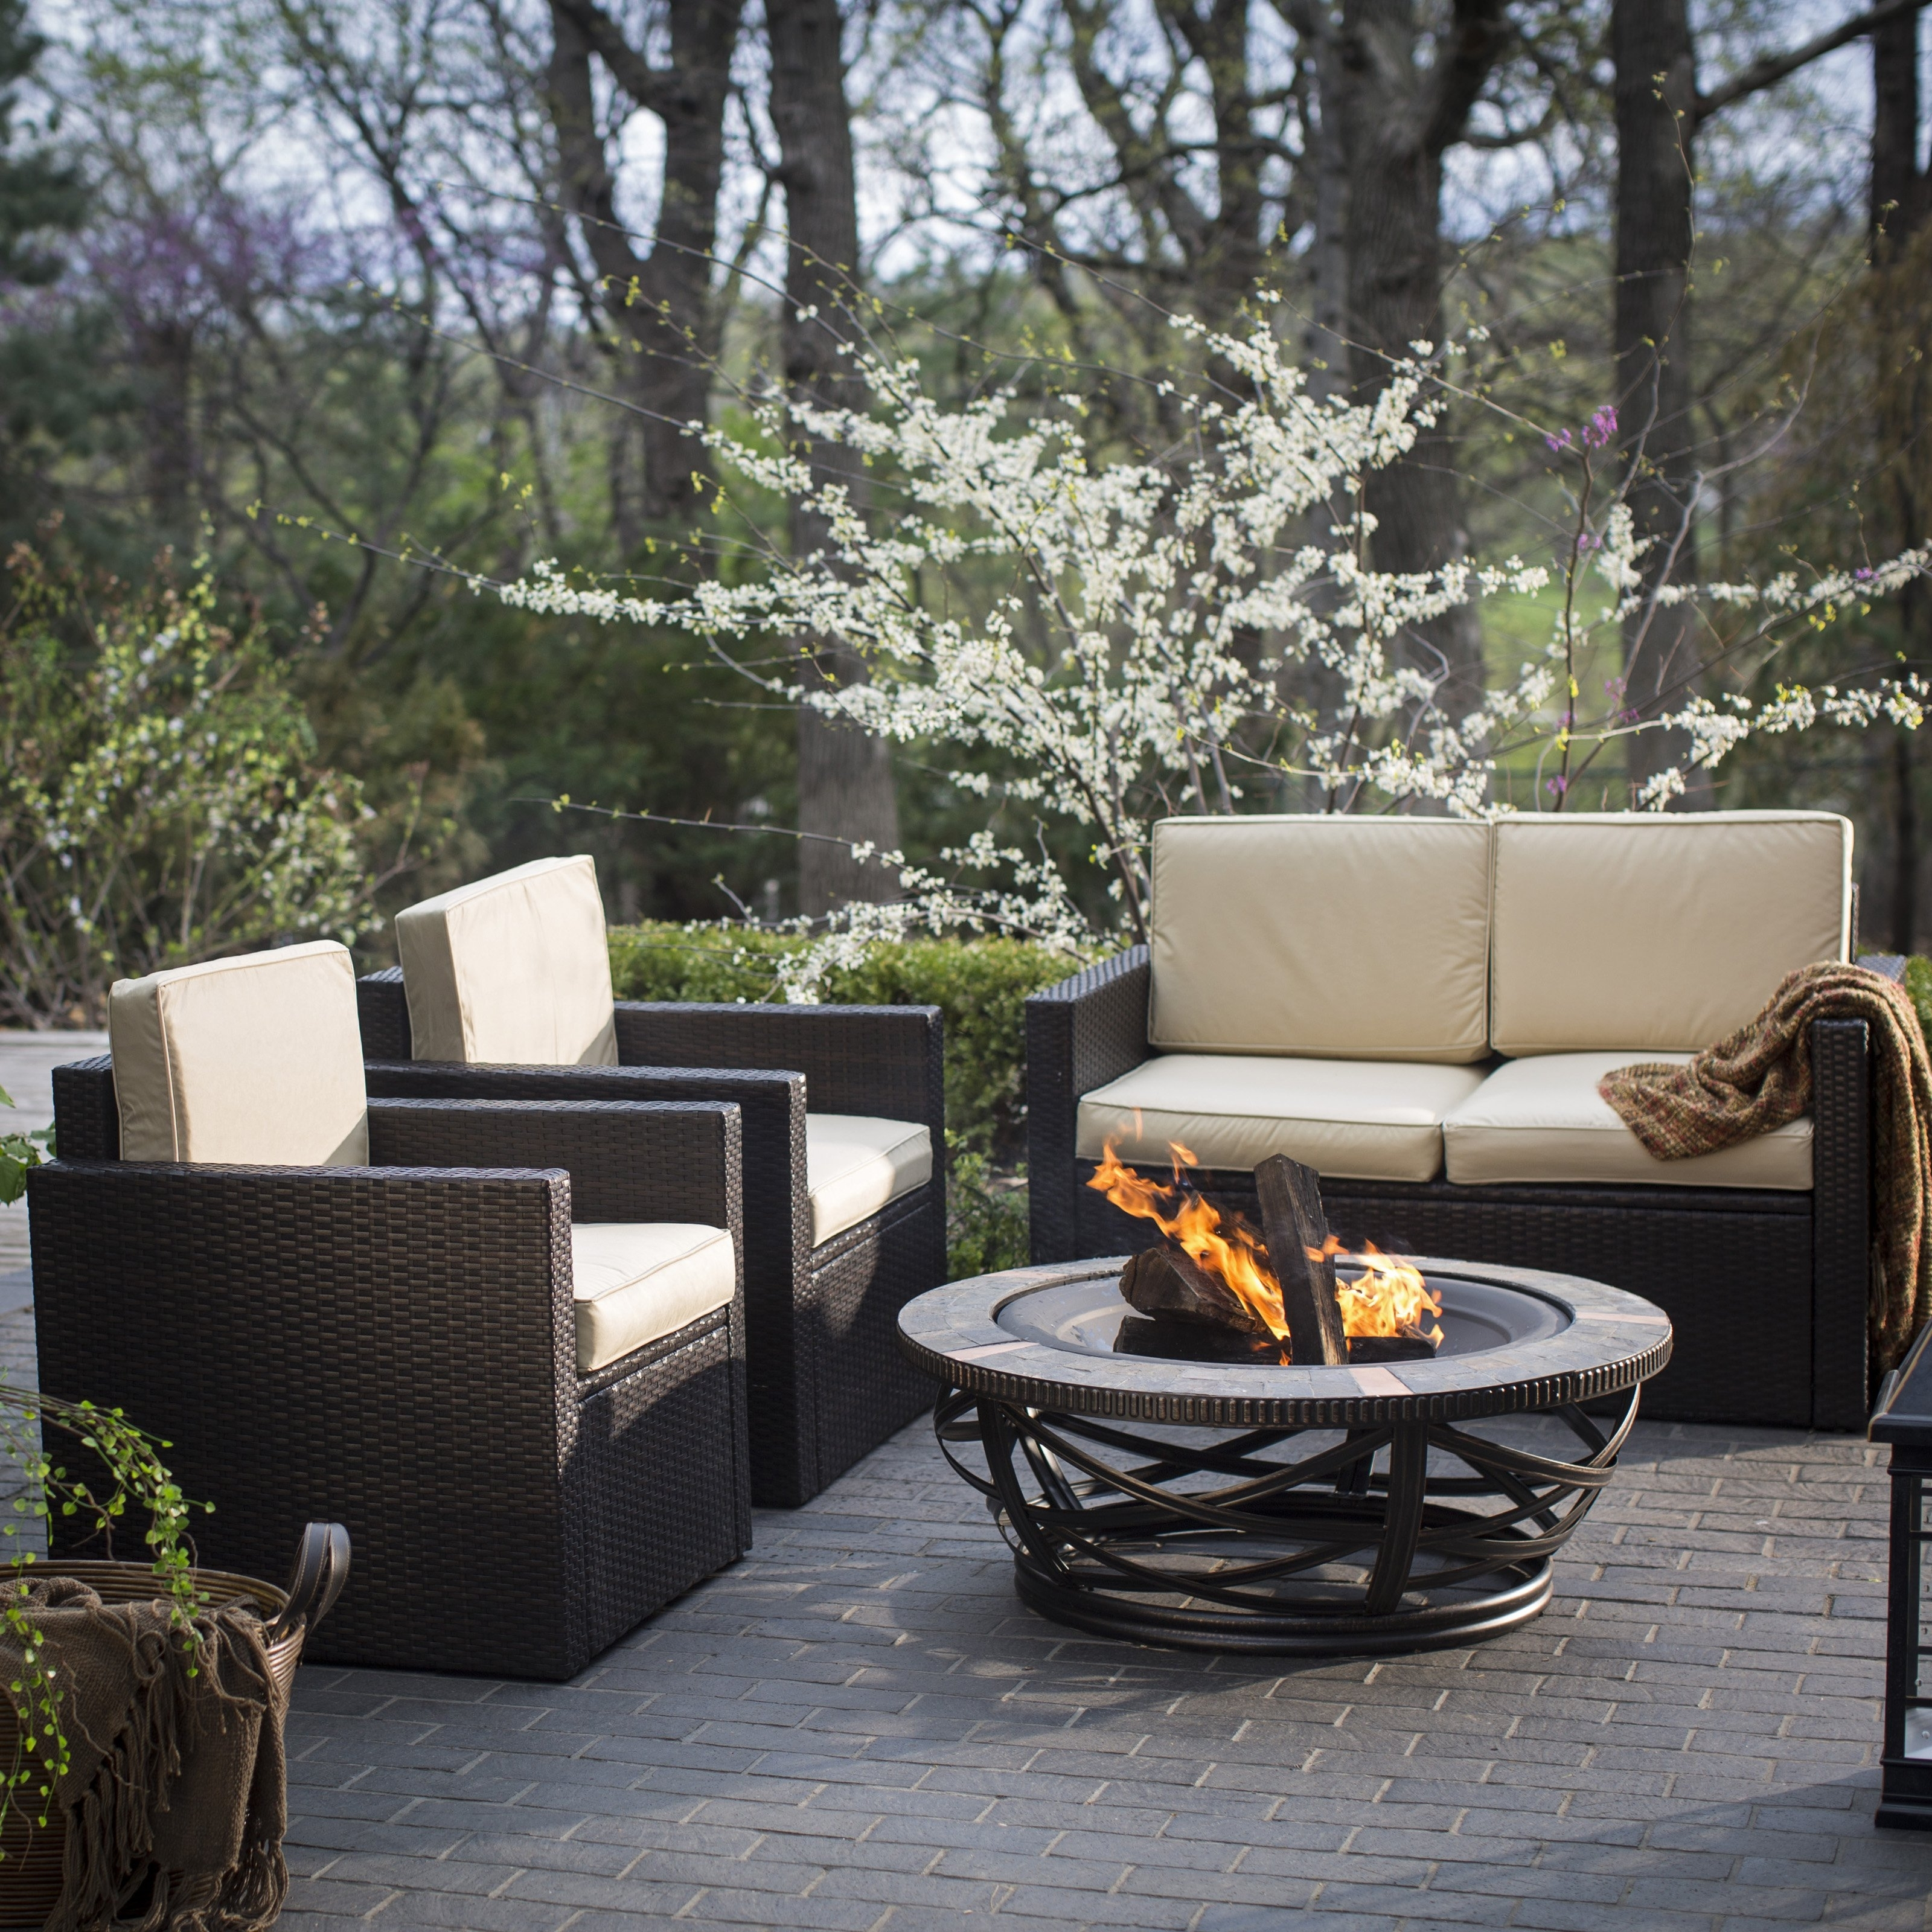 Widely Used Costway 4 Pc Patio Rattan Wicker Chair Sofa Table Set Outdoor Garden Inside Walmart Patio Furniture Conversation Sets (View 20 of 20)